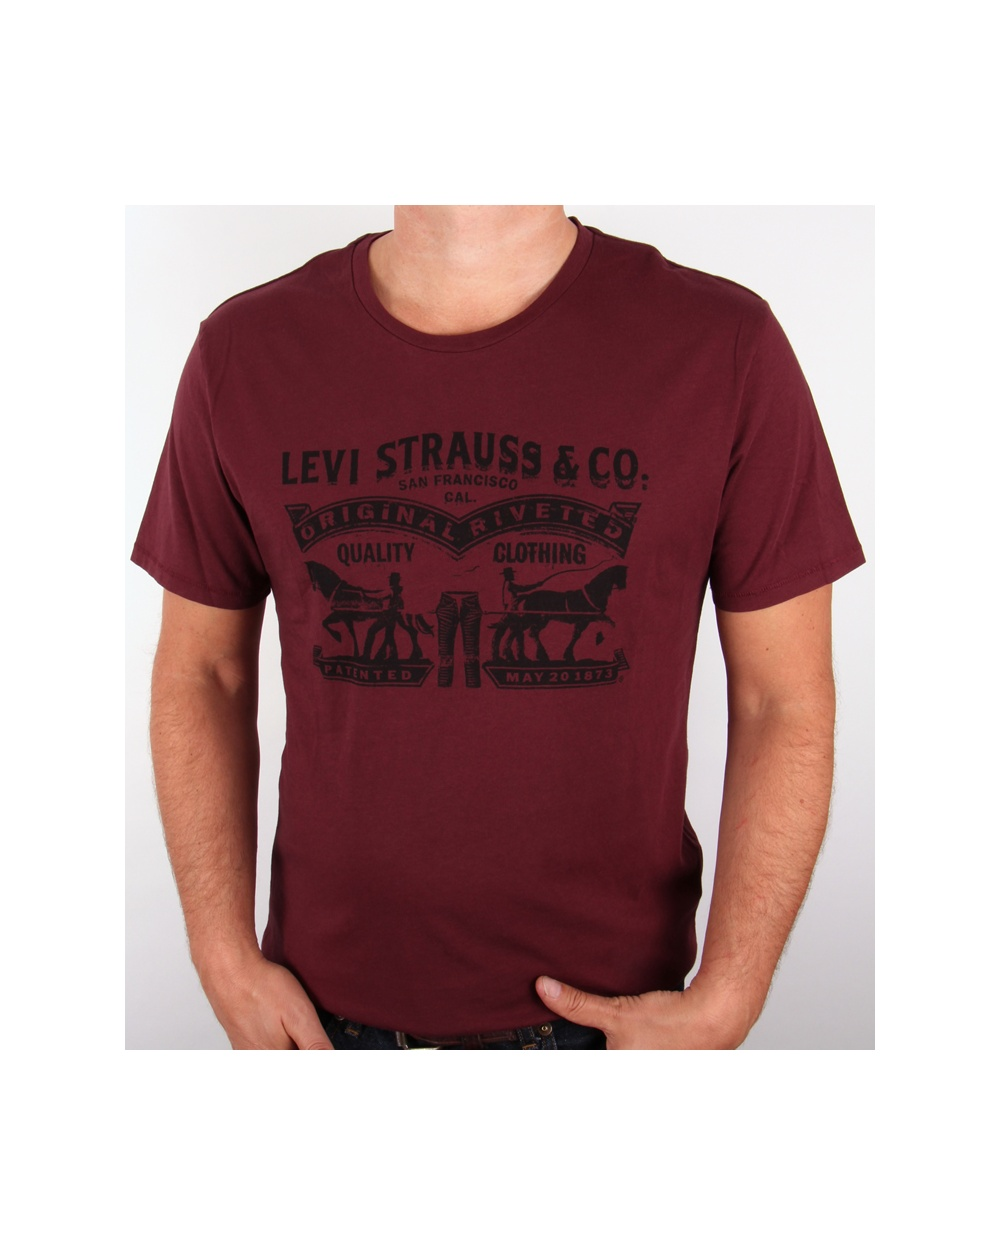 Levis strauss co logo t shirt burgundy tee mens for Levis t shirt sale